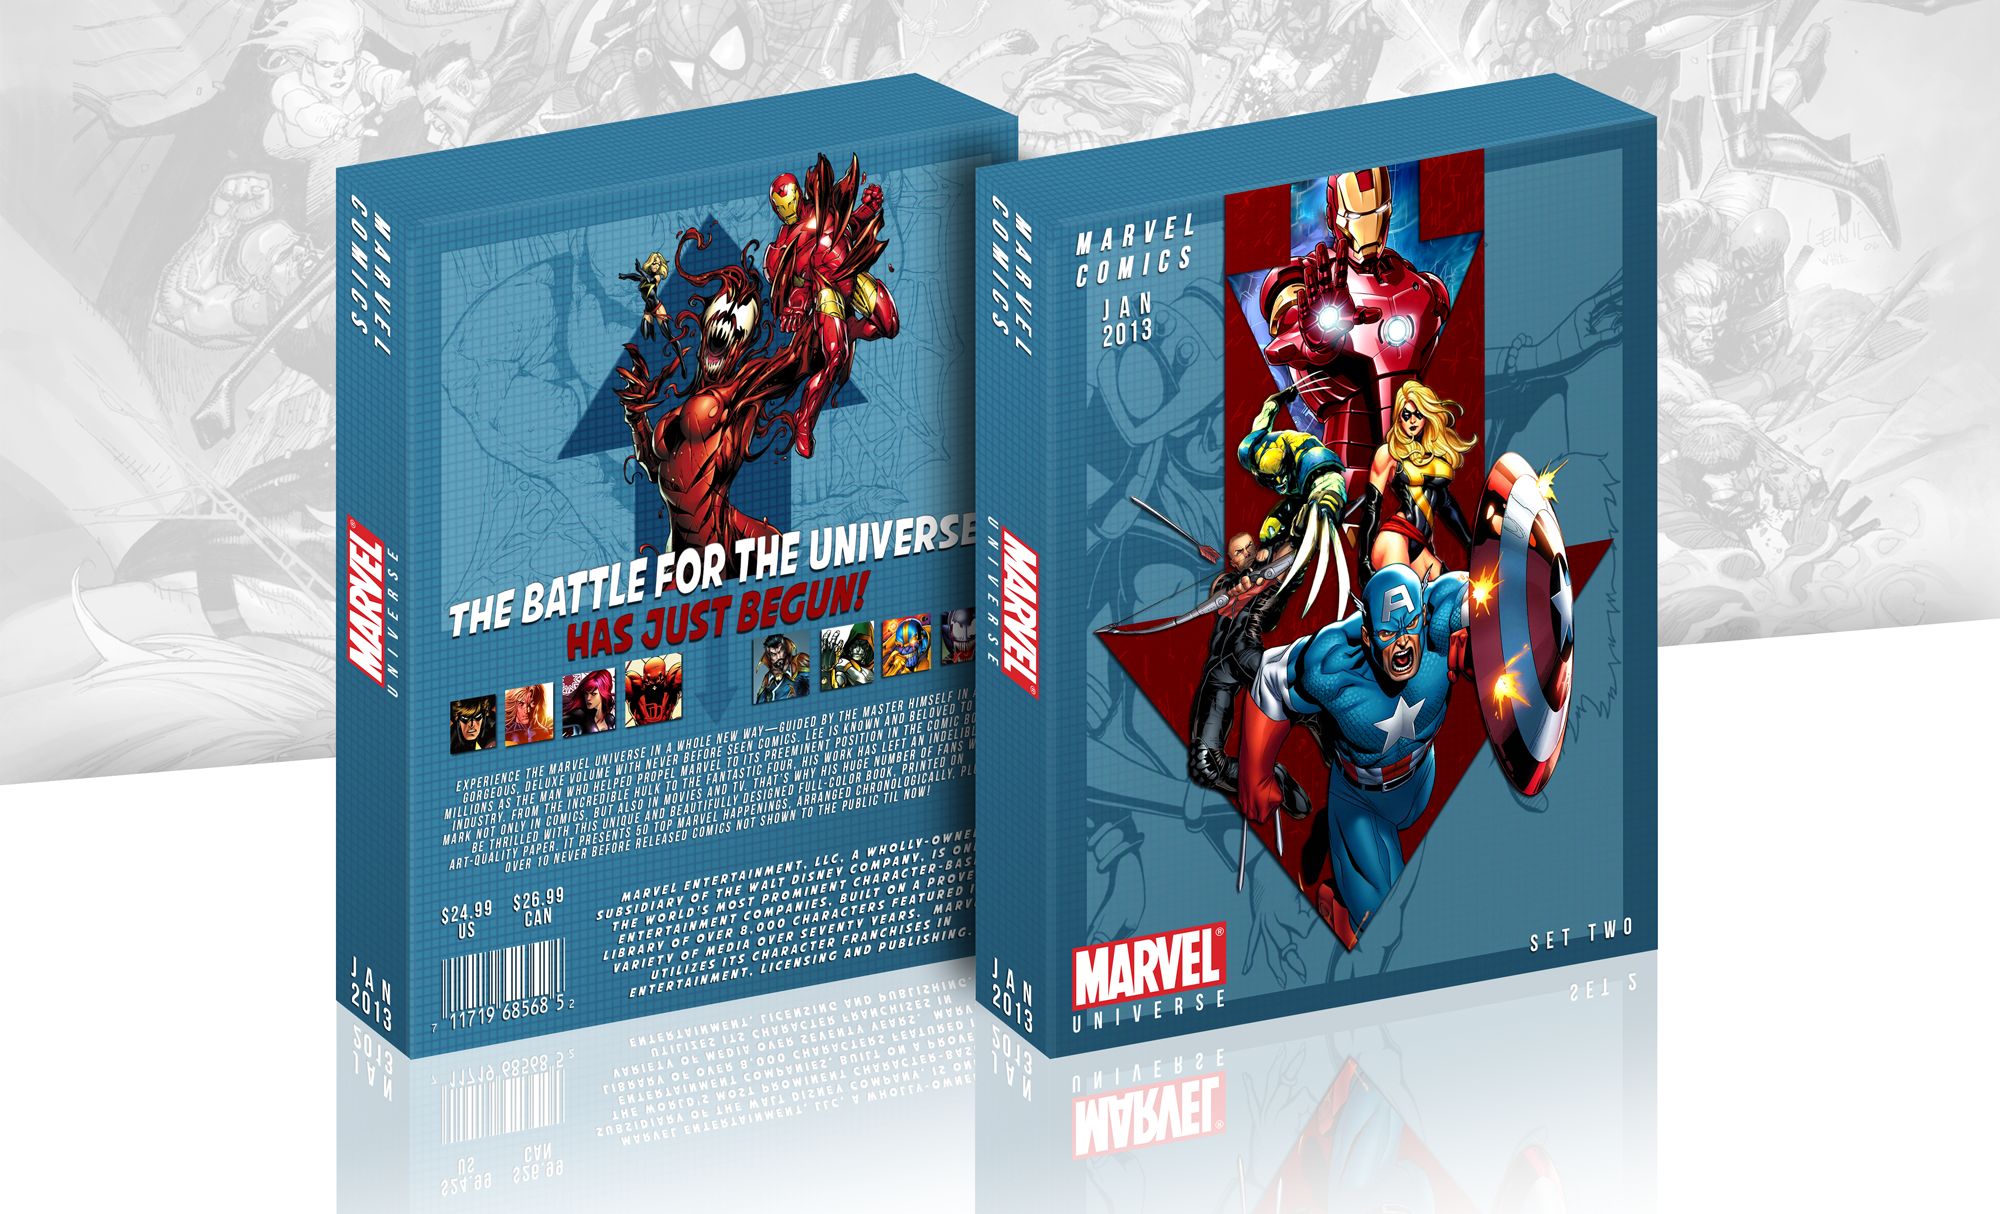 Marvel Universe Comic: Set Two box cover